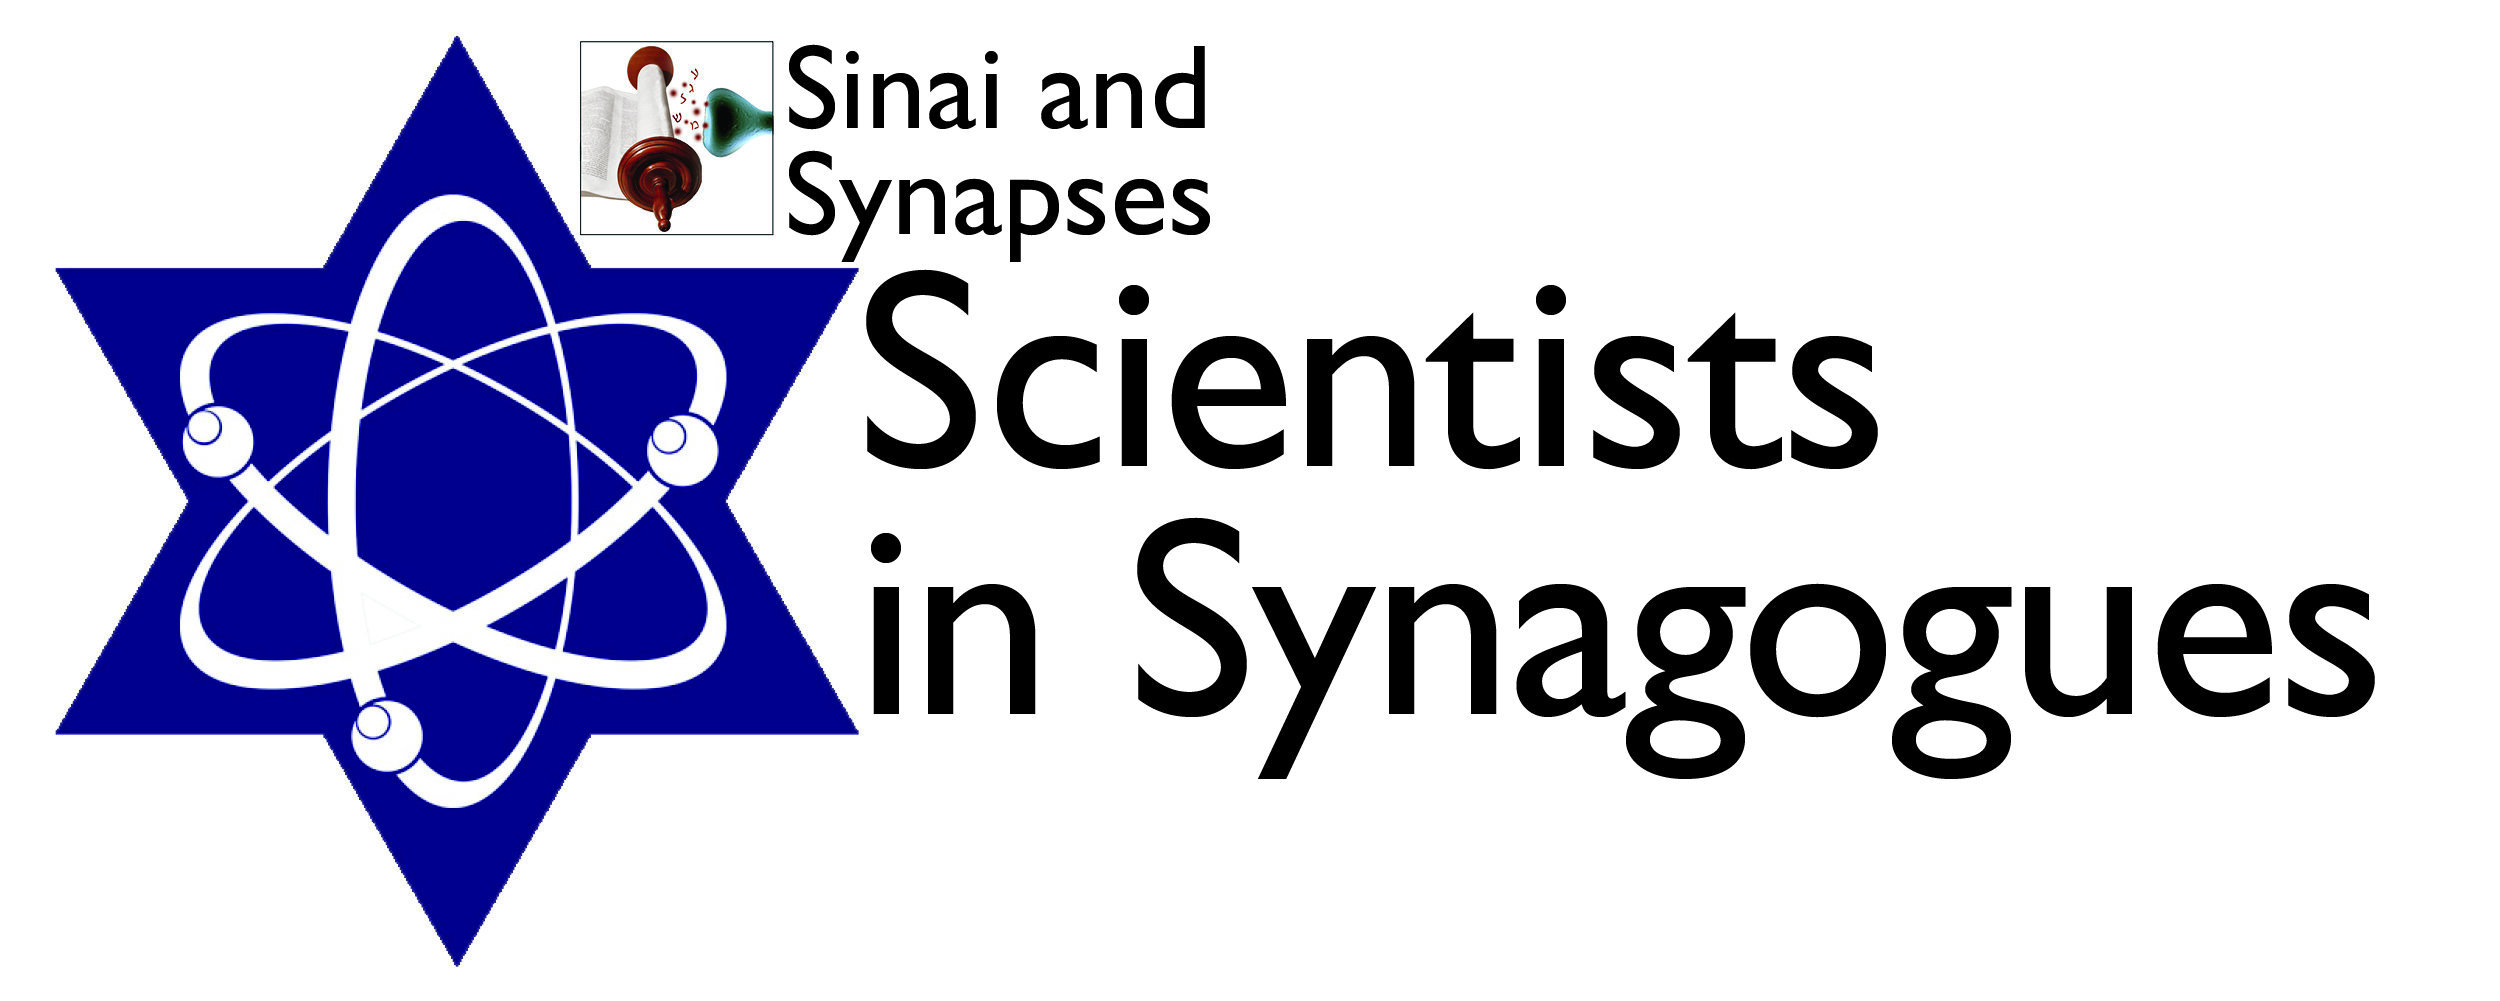 Scientists in Synagogues Logo.jpg